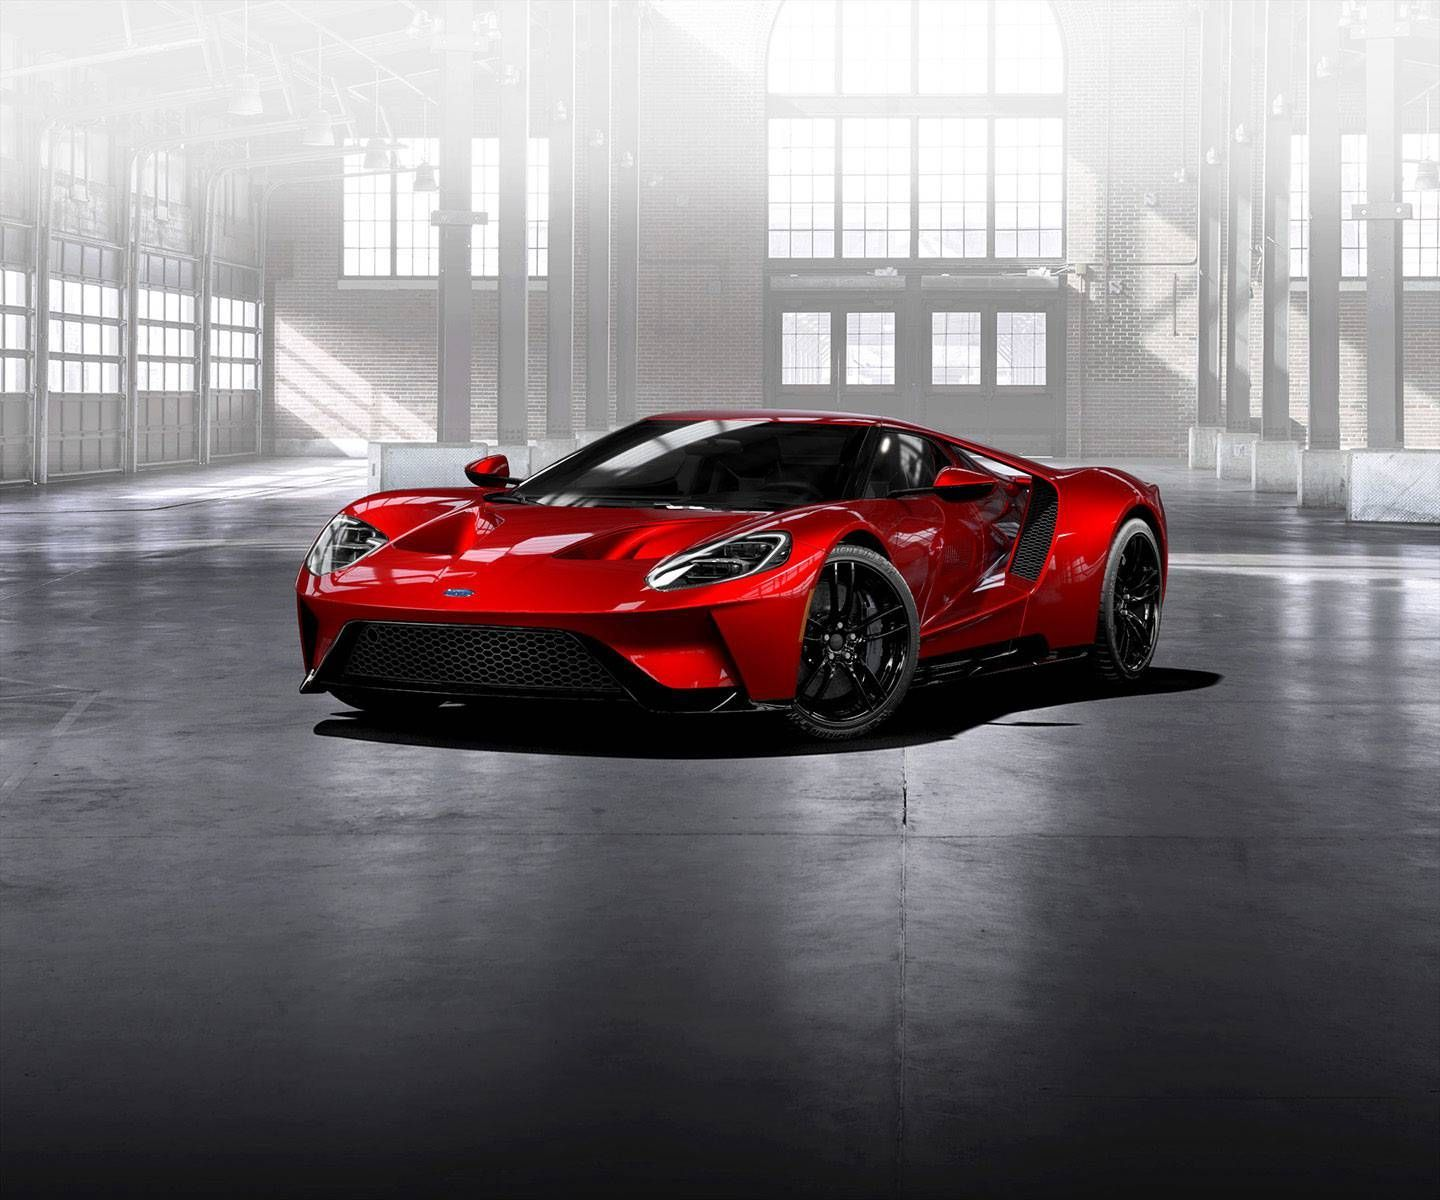 Ford Gt Supercar Ford Sportscars Ford Com Fordgt Fordgt Check Out Facebook And Instagram Metalroadstudio Very Cool Ford Gt Ford Sport Ford Sports Cars